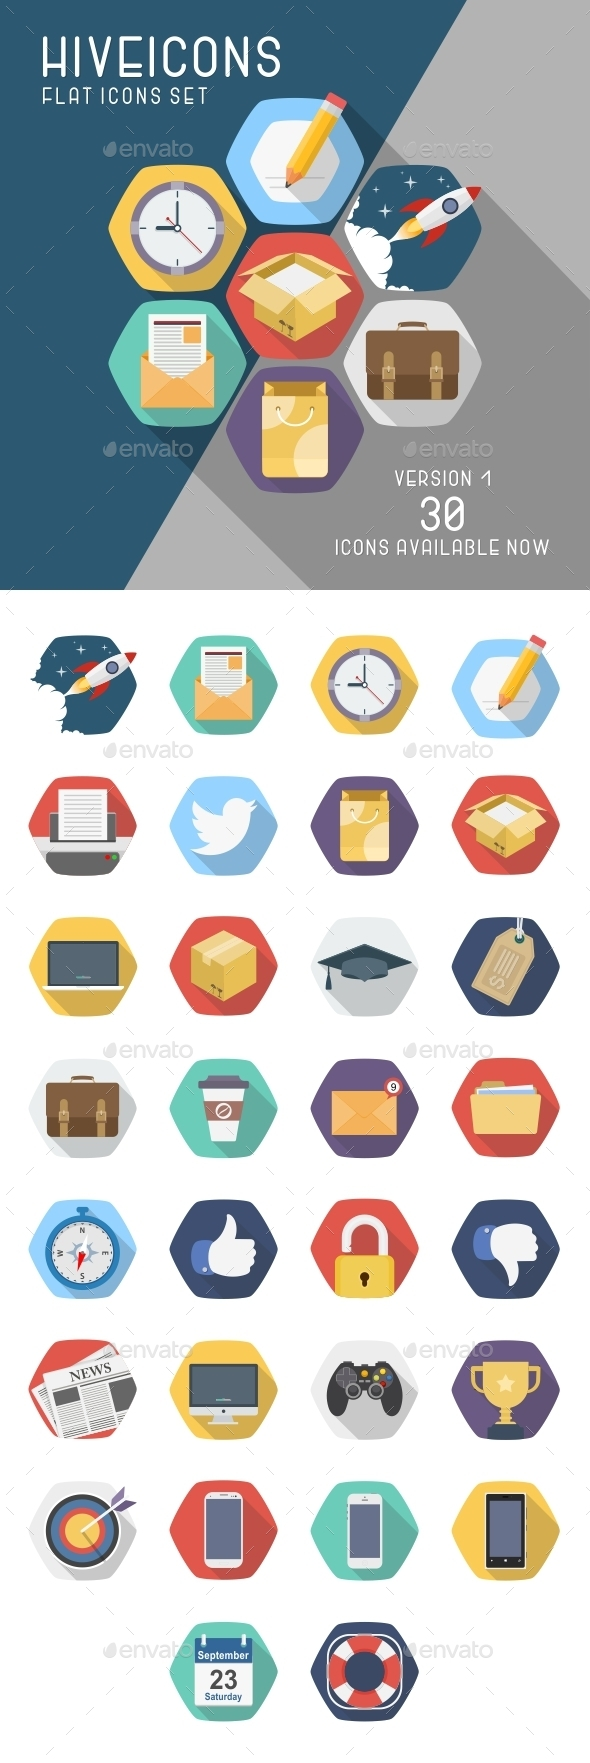 GraphicRiver Hive Icons Set 9026645